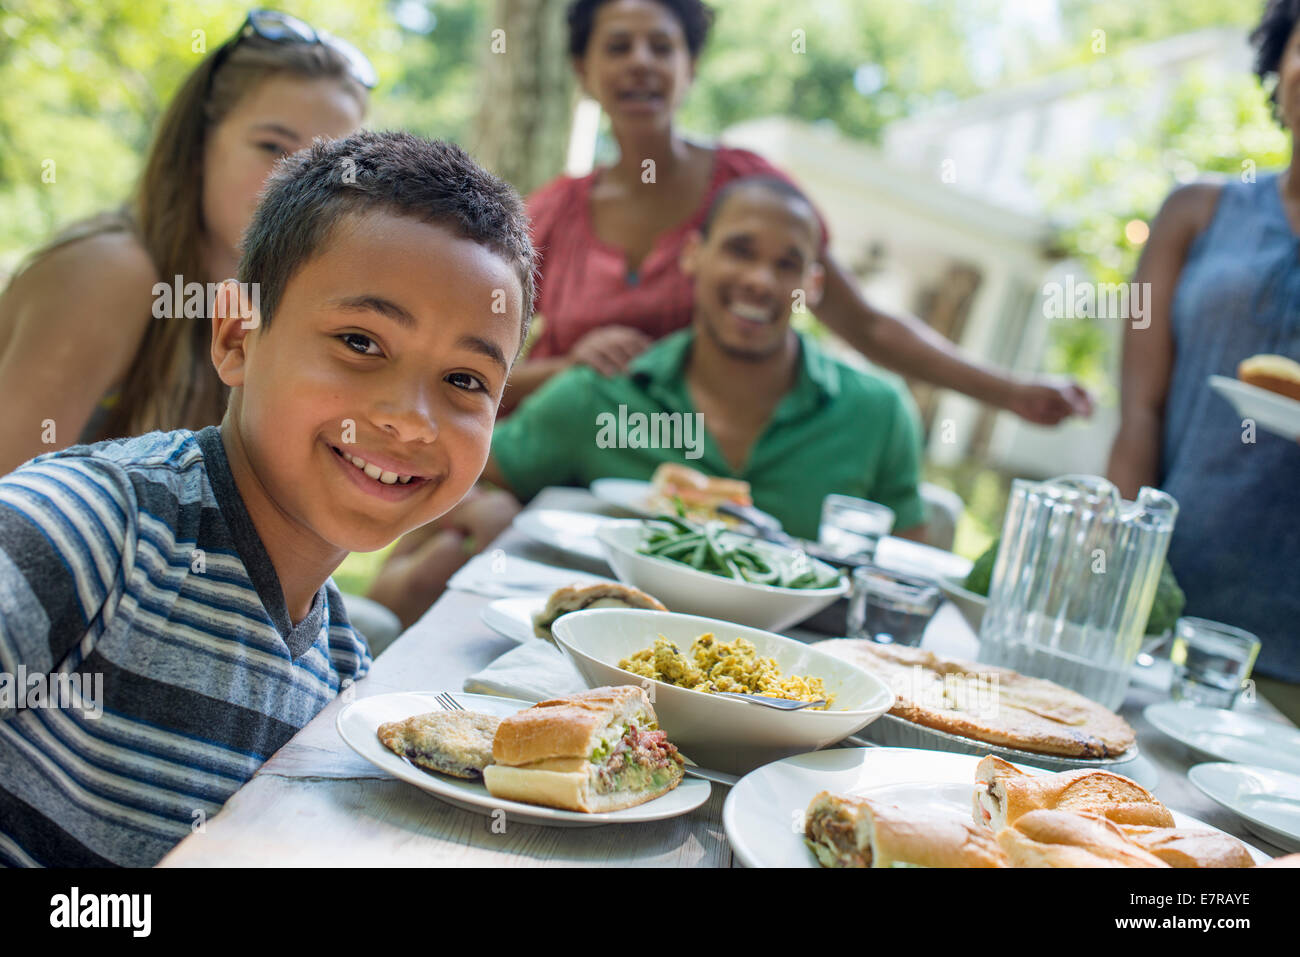 A family gathering, men, women and children around a table in a garden in summer. A boy smiling in the foreground. - Stock Image